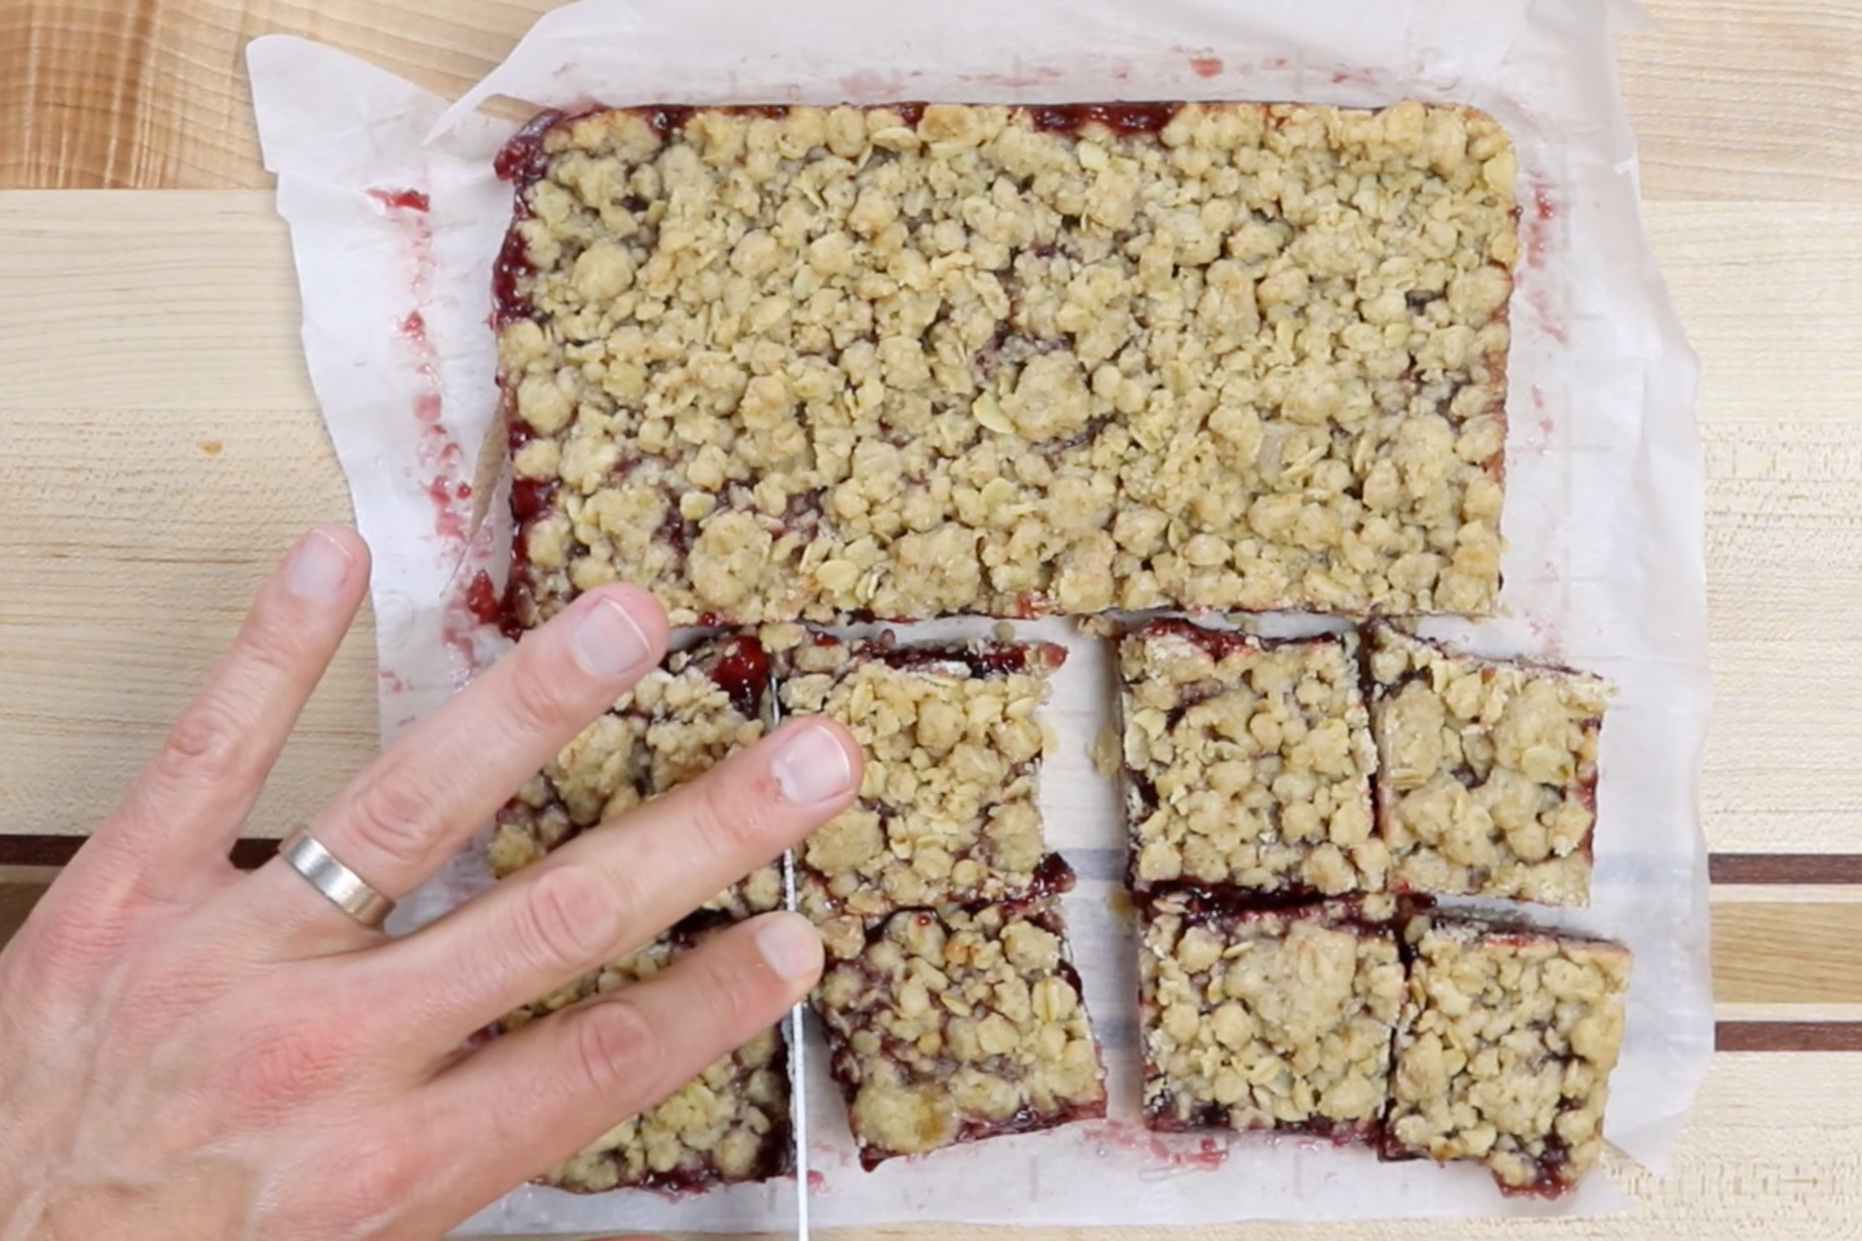 7. Let bars cool in pan completely before cutting. For best results cover and put in the freezer for 30 minutes before cutting. -